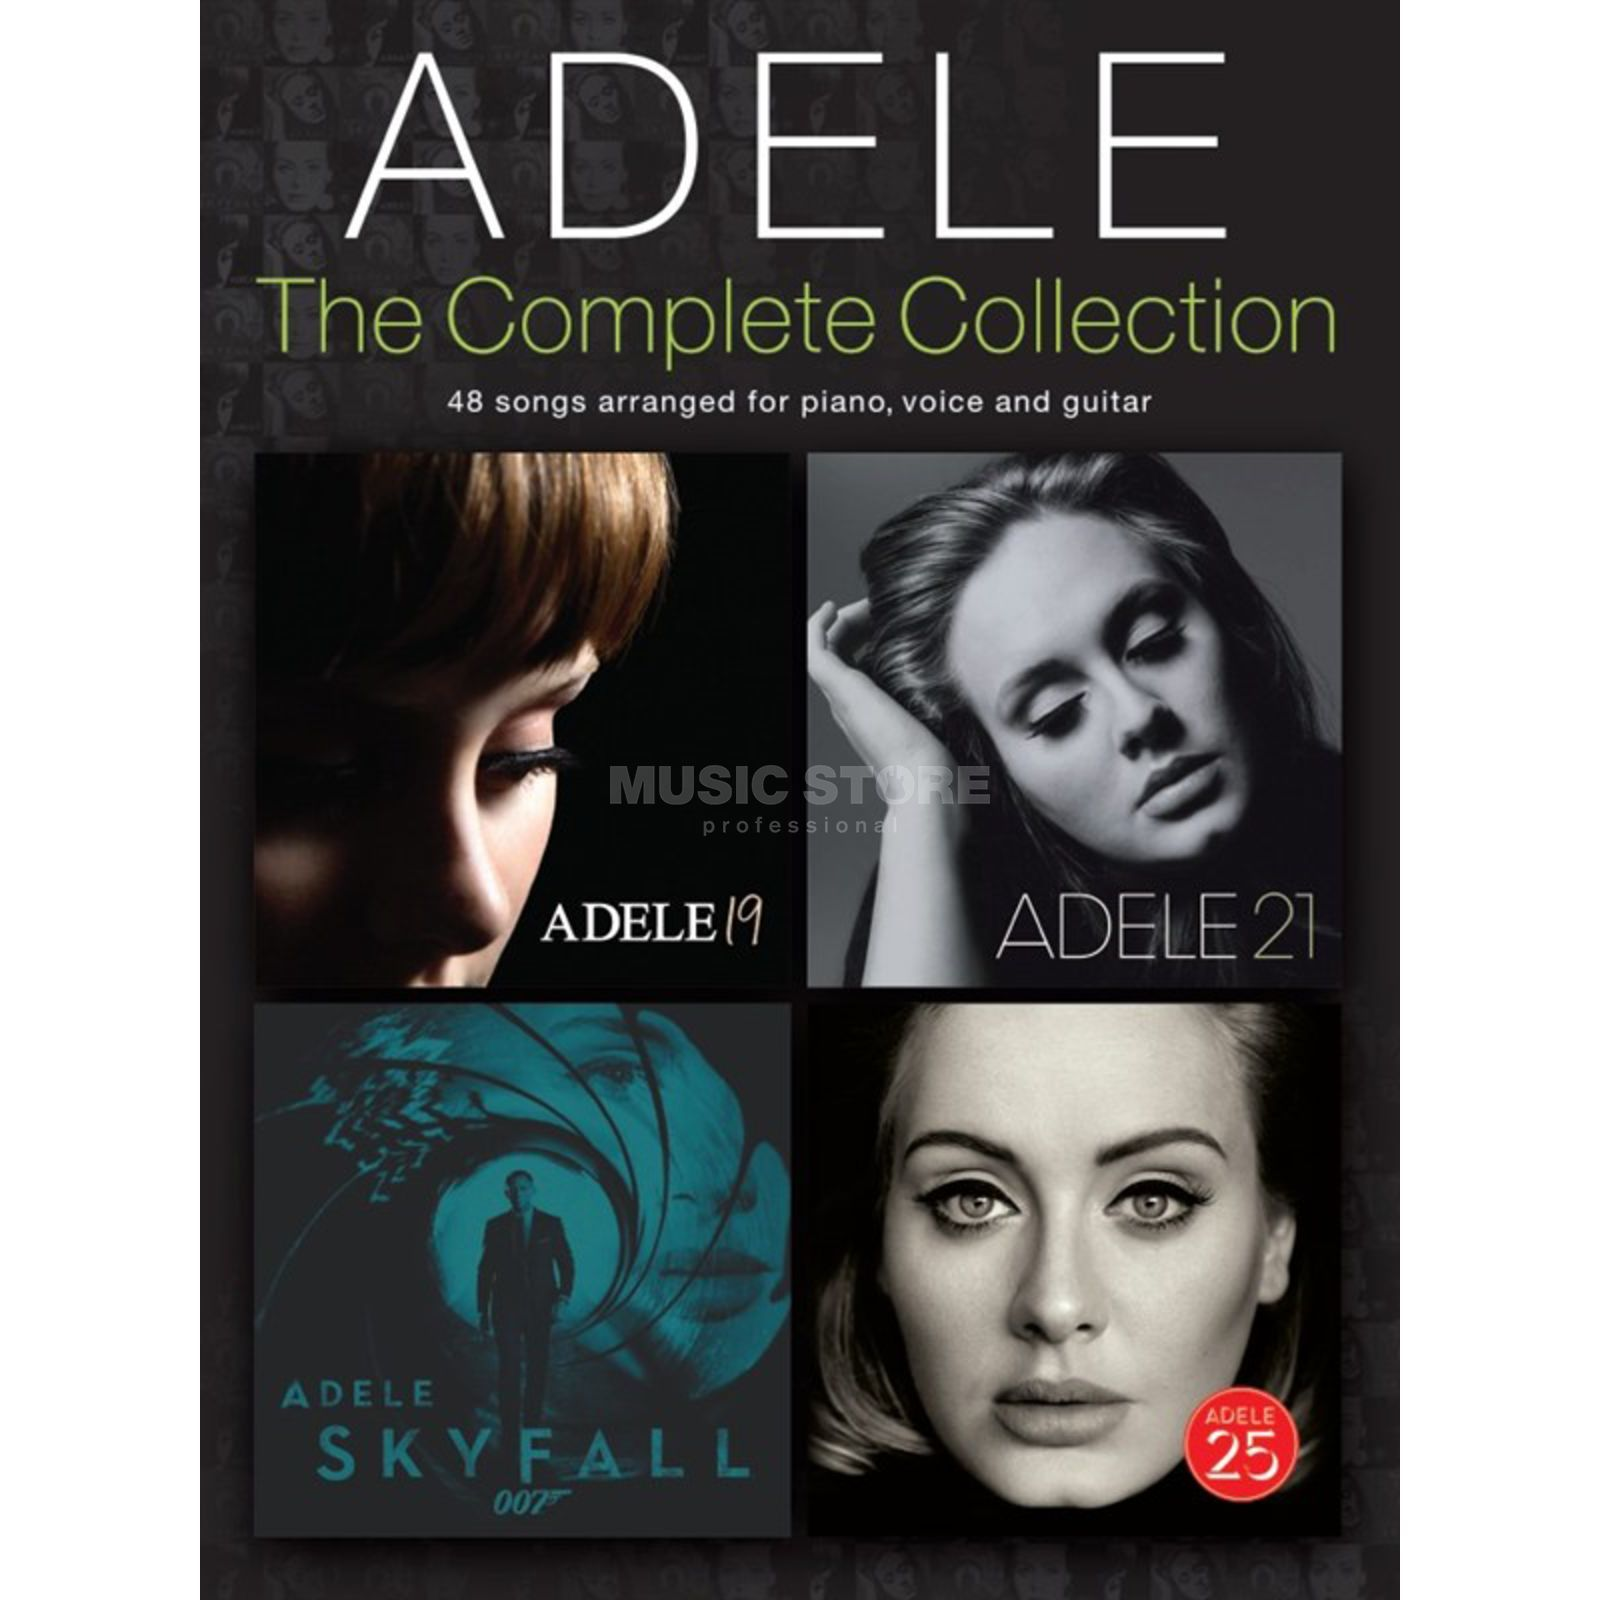 Wise Publications Adele: The Complete Collection Zdjęcie produktu